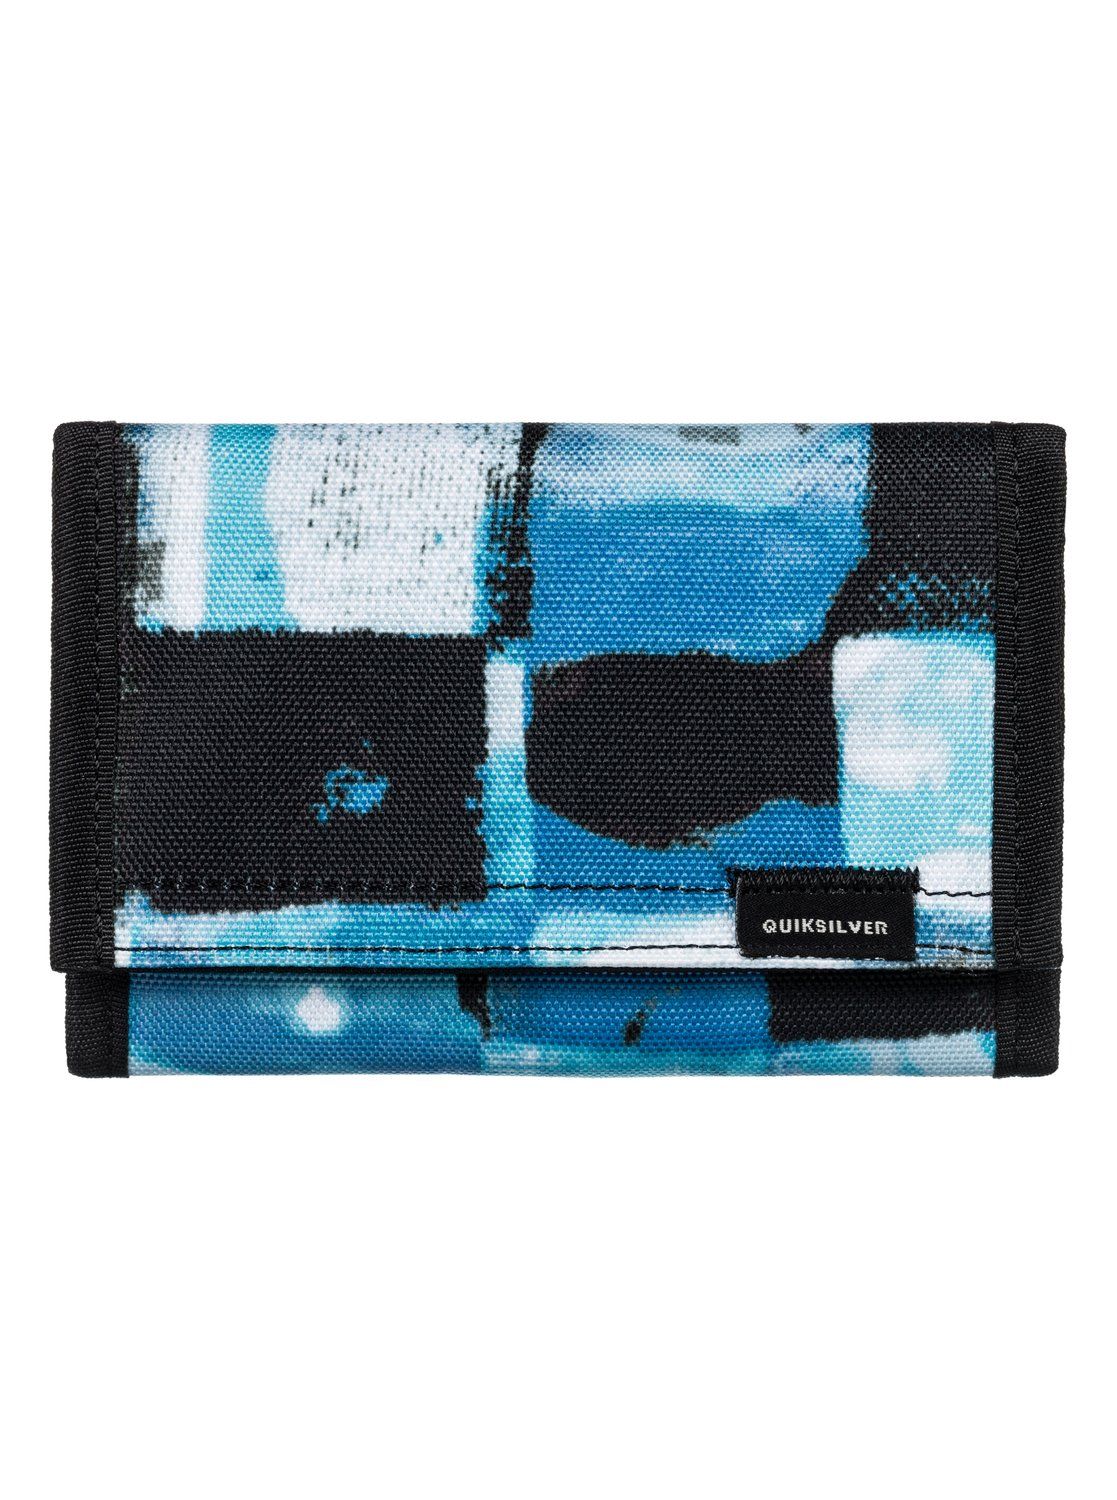 The Everydaily - Portefeuille pour Homme - Quiksilver